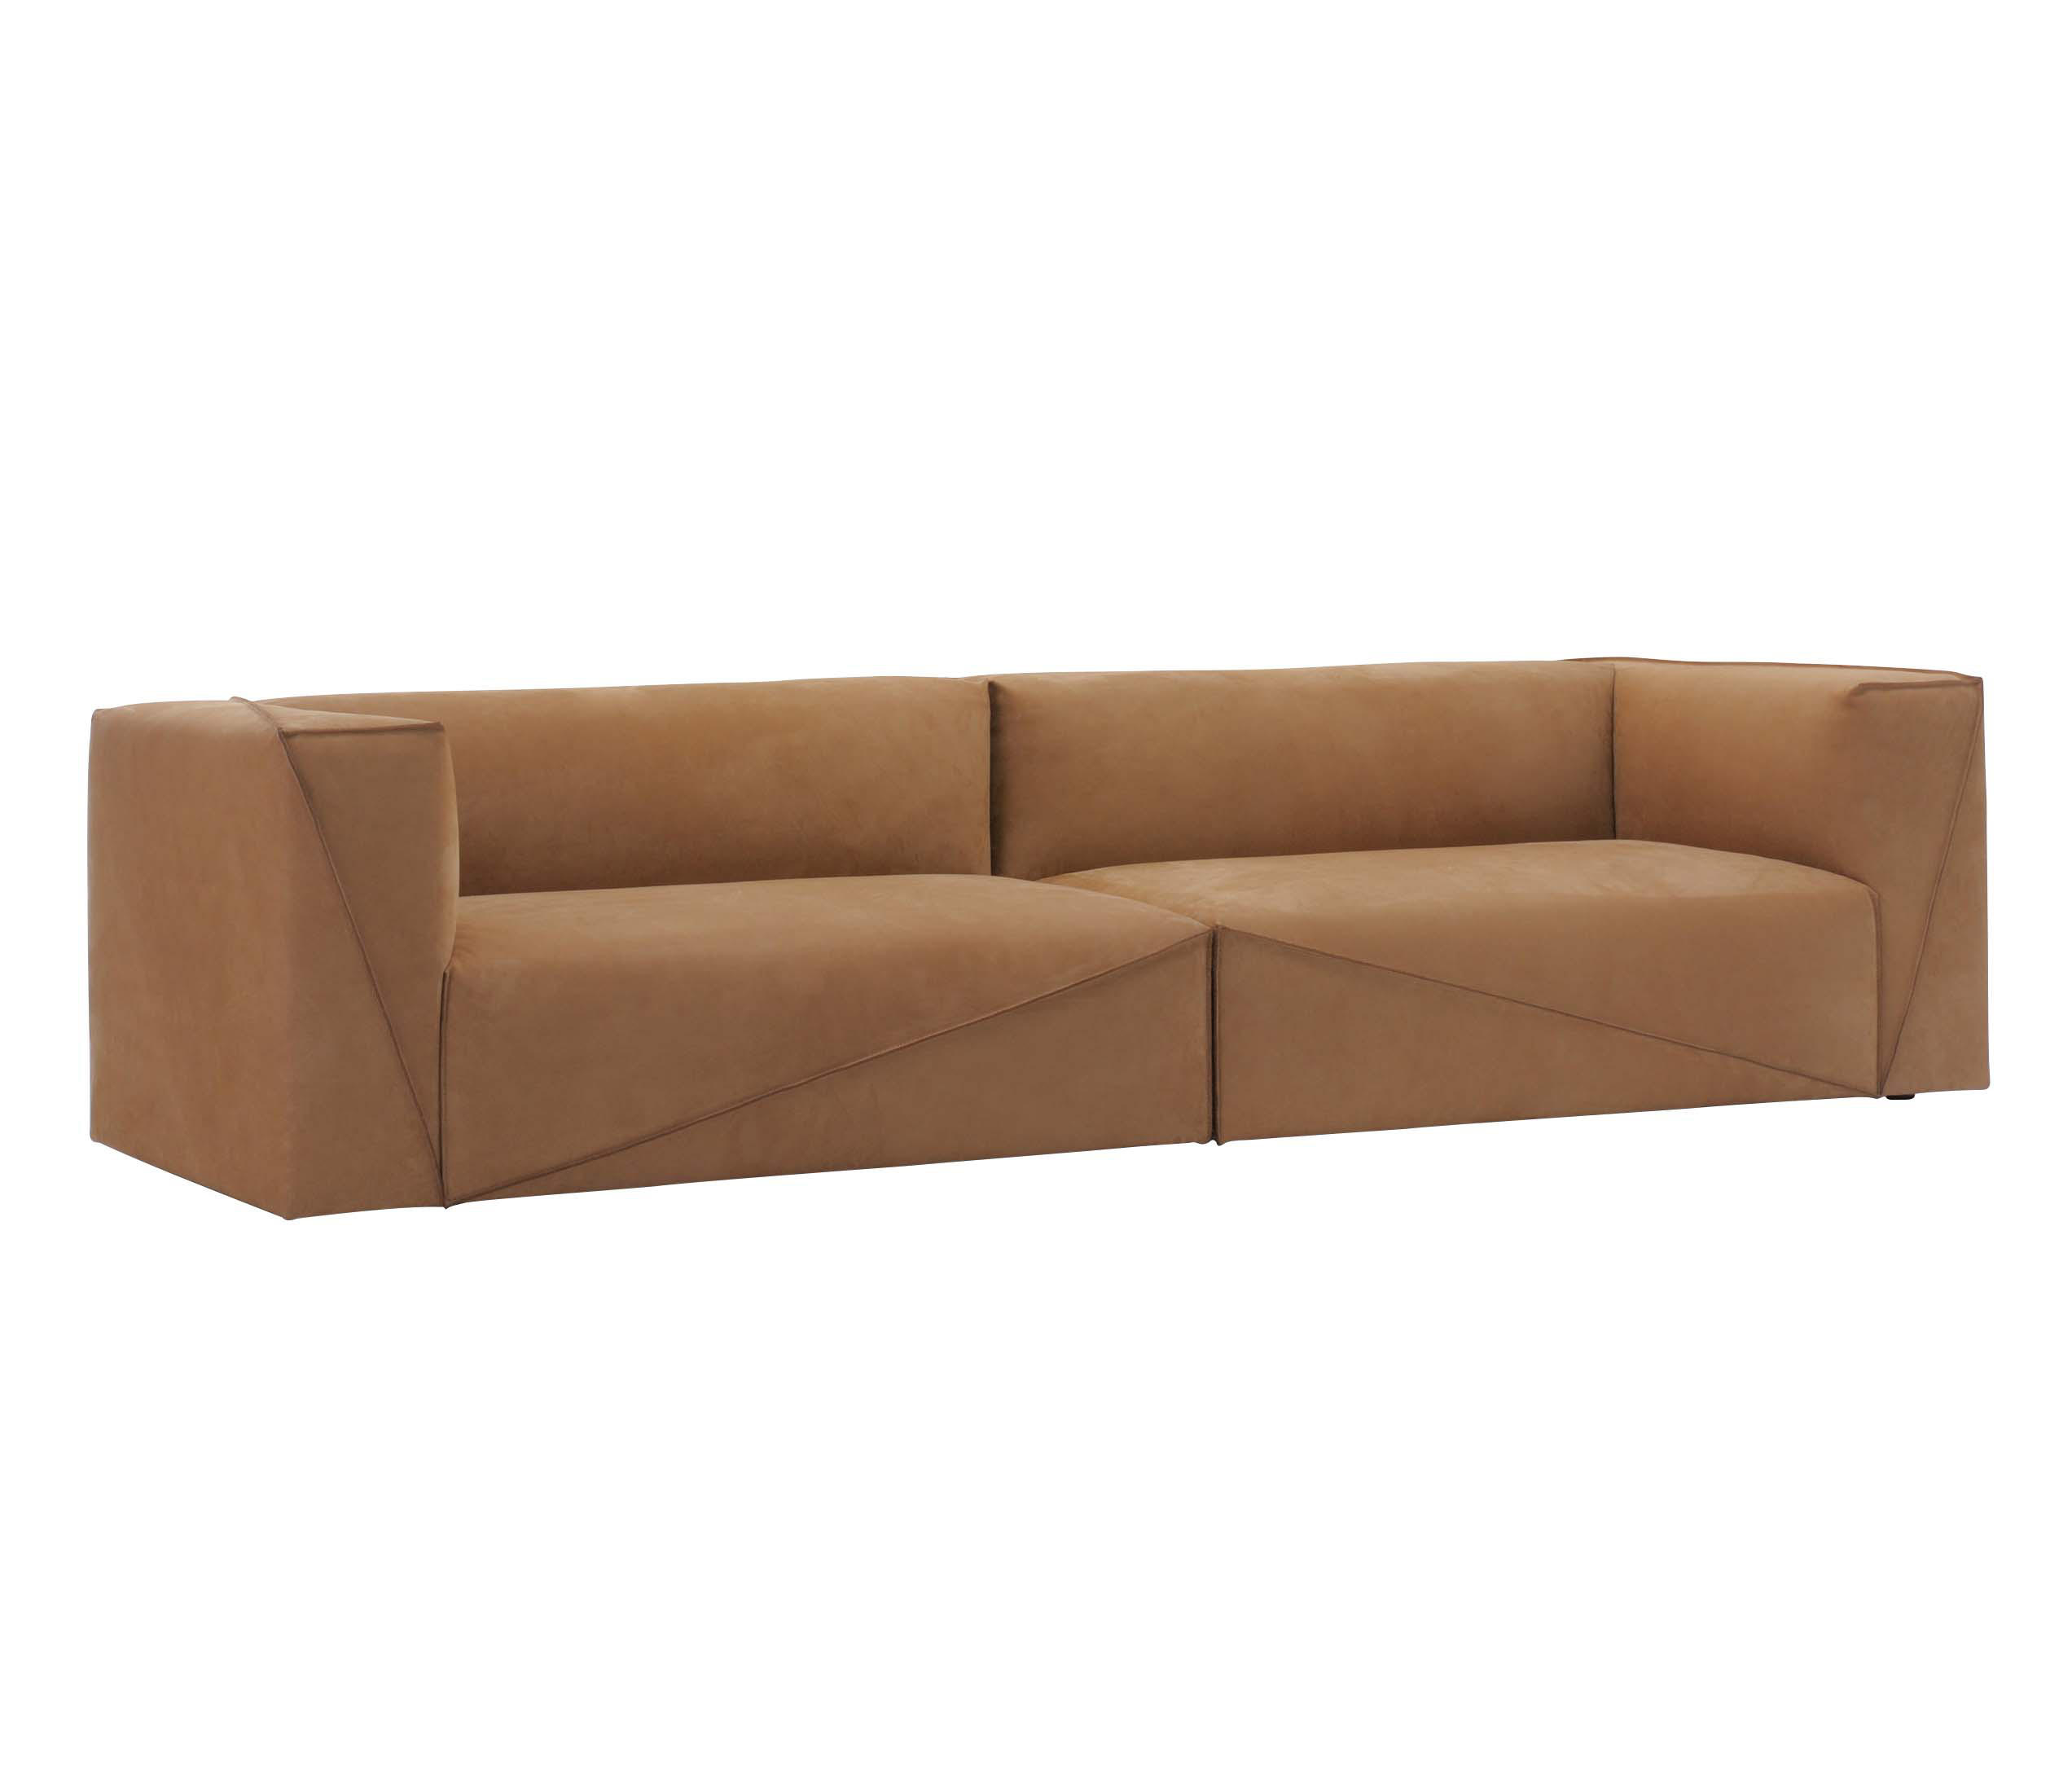 Divani Fendi Diagonal Sectional Sofa Divani Fendi Casa Architonic